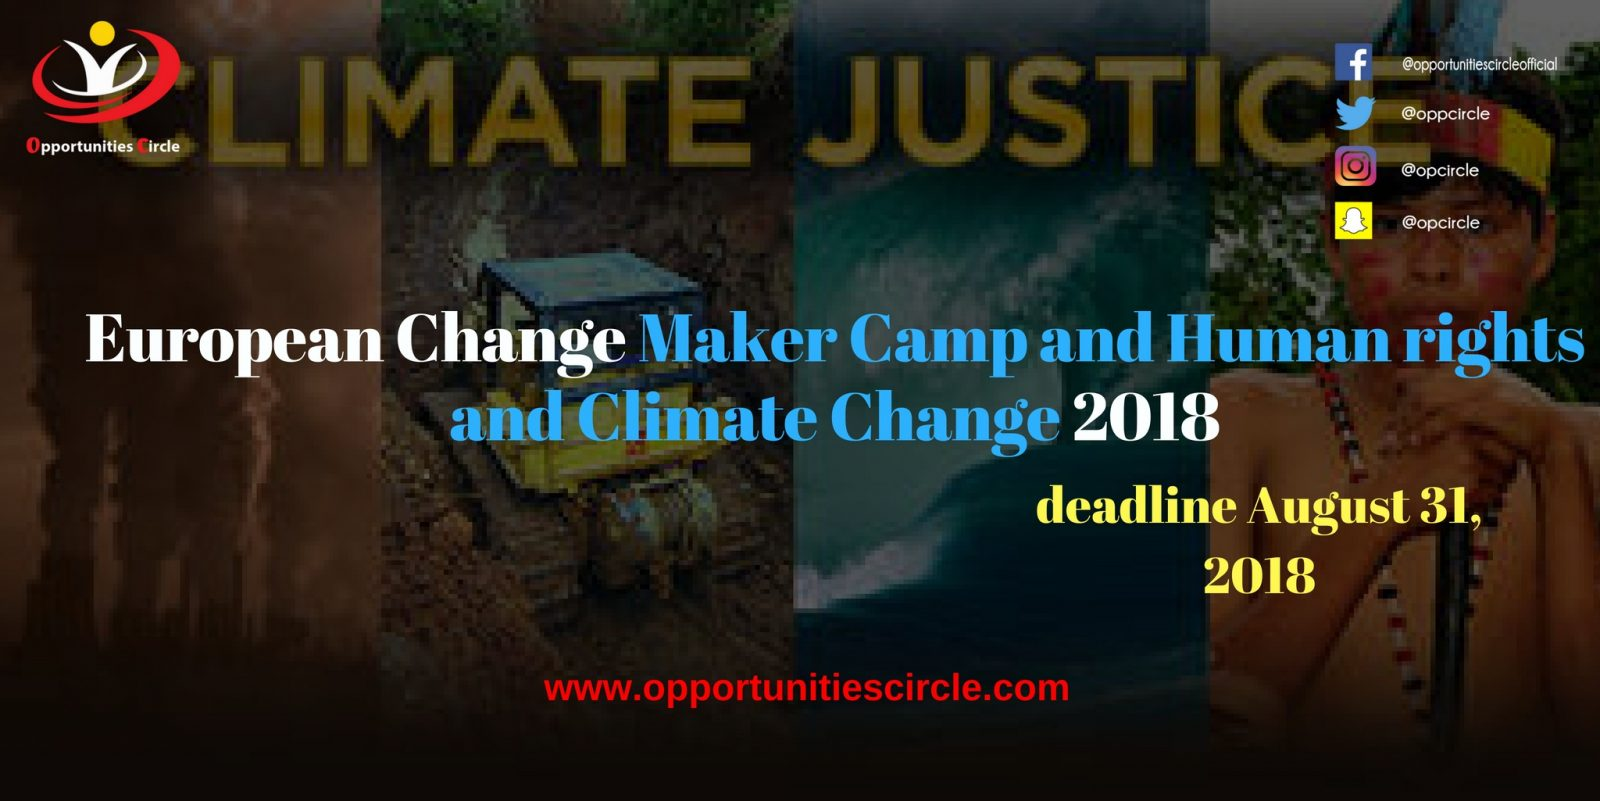 European Change maker Camp for Human Rights and Climate Justice 2018 Funded - European Changemaker Camp for Human Rights and Climate Justice 2018 (Funded)